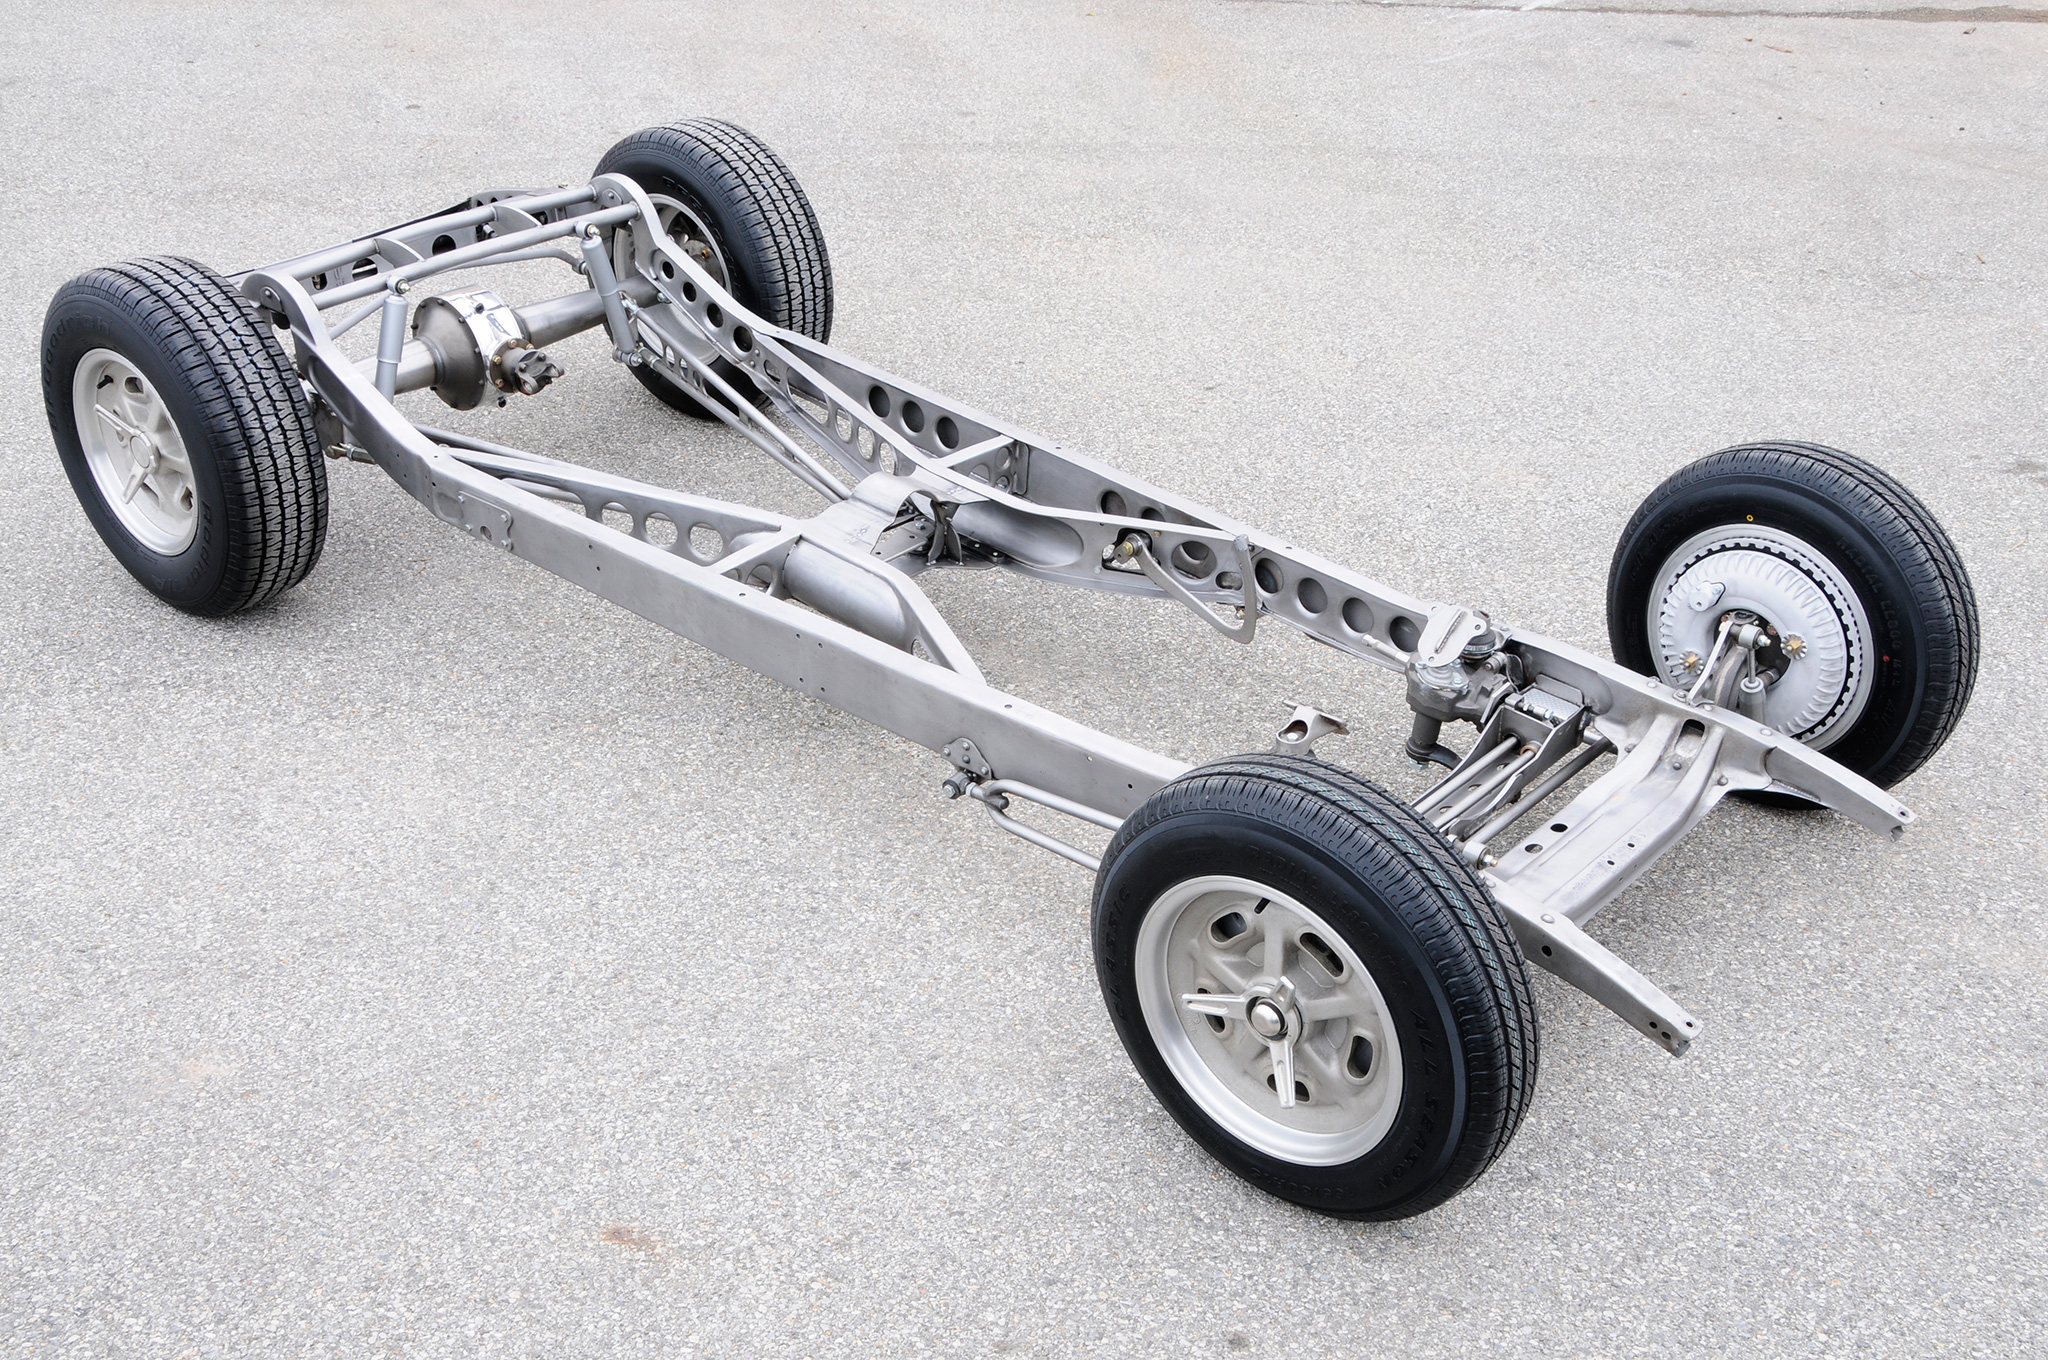 Lest you think Ionia only works on Ford chassis, here's a unique Chevy chassis going for a client, Dave Thomas. Photo: Chuck Vranas.